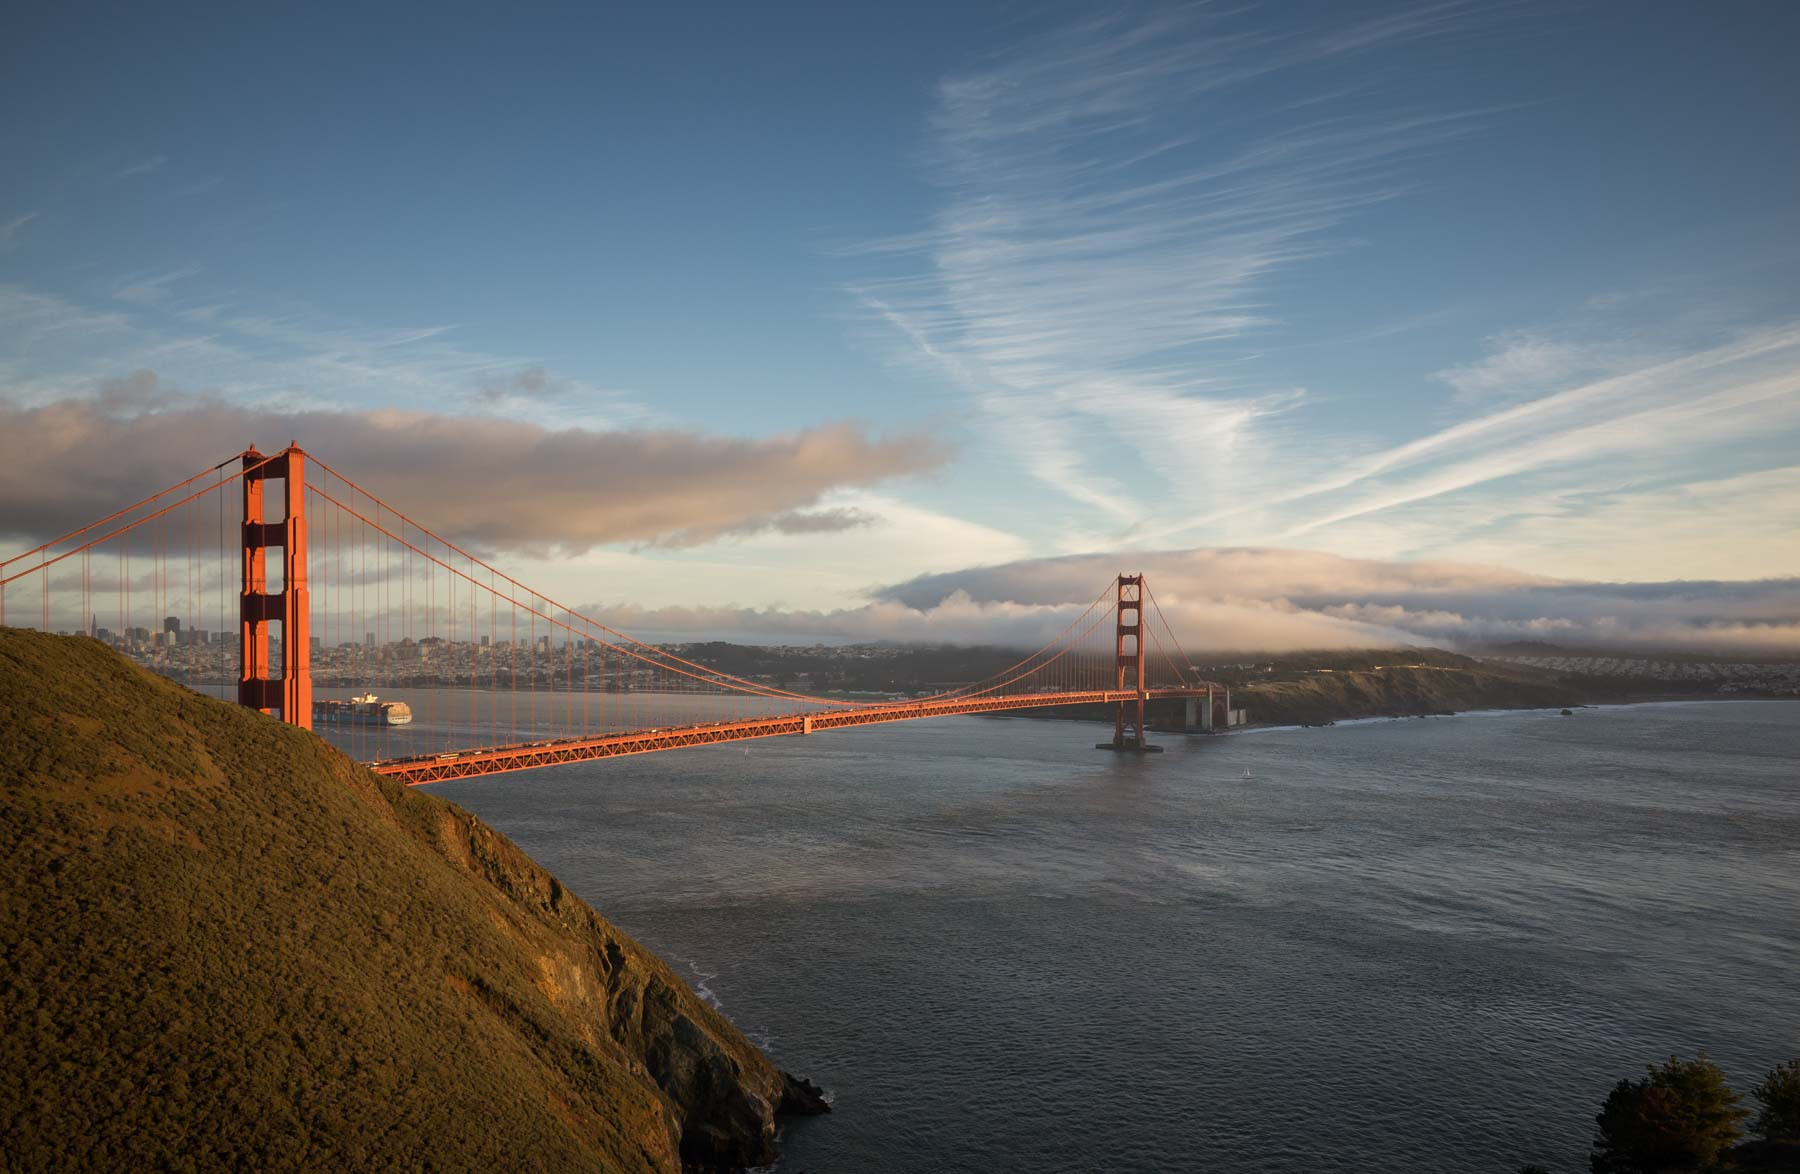 Best ideas about San Francisco Landscape . Save or Pin San Francisco and Landscape graphy – SeattleSteve Now.